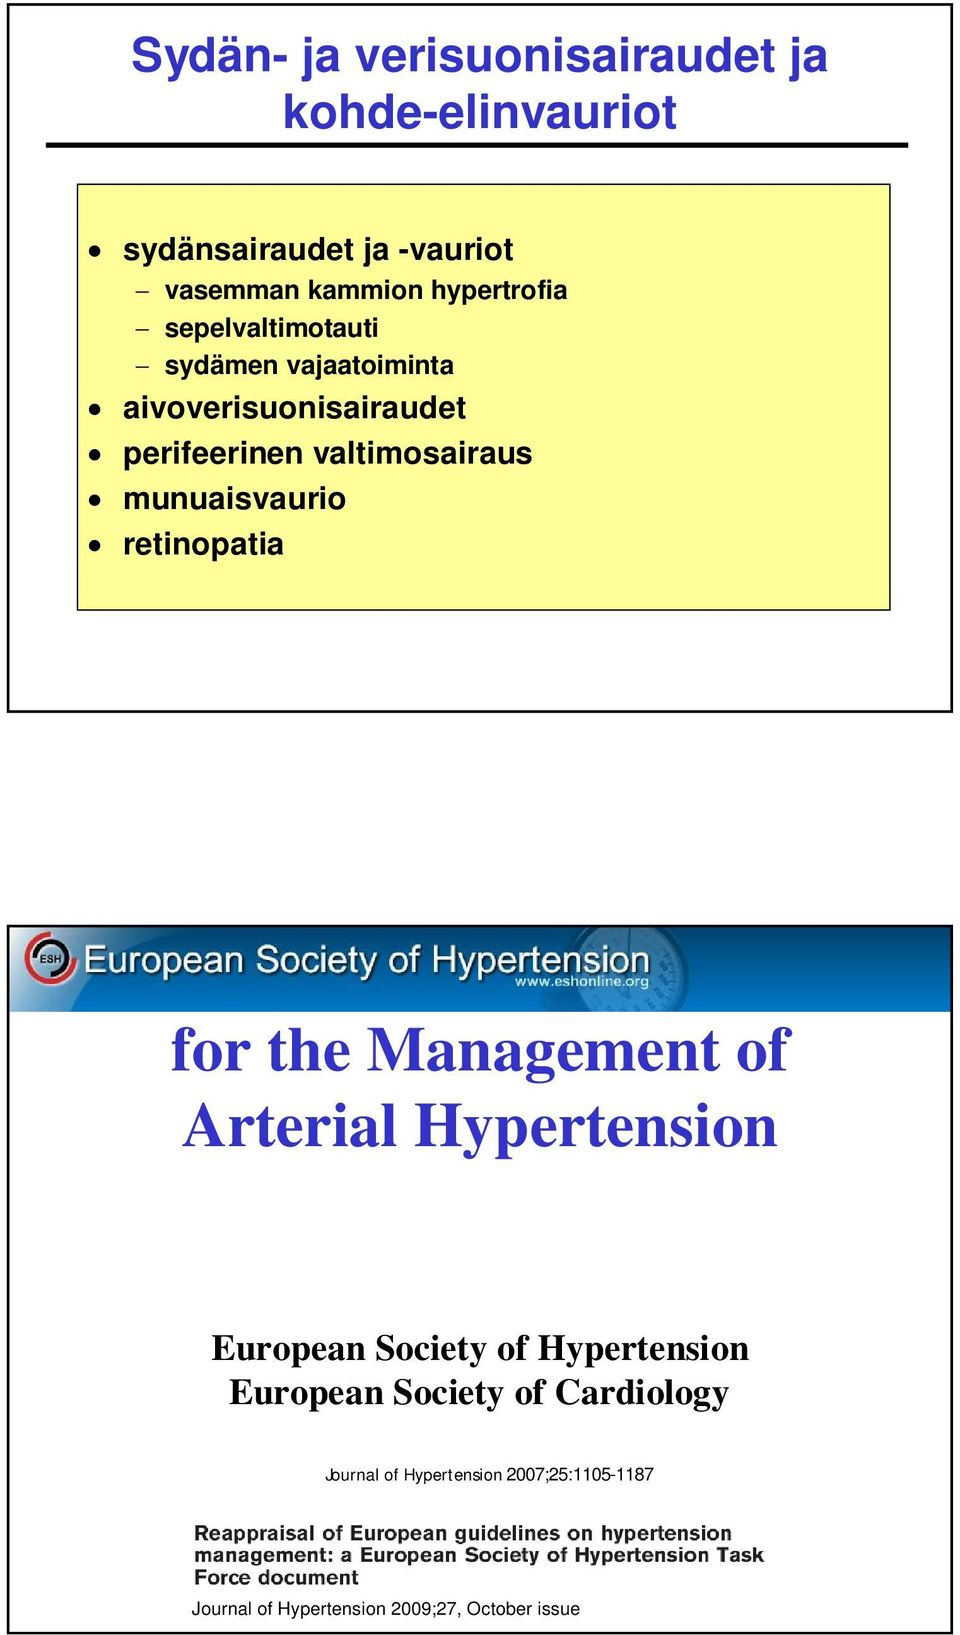 retinopatia 2007 Guidelines for the Management of Arterial Hypertension European Society of Hypertension